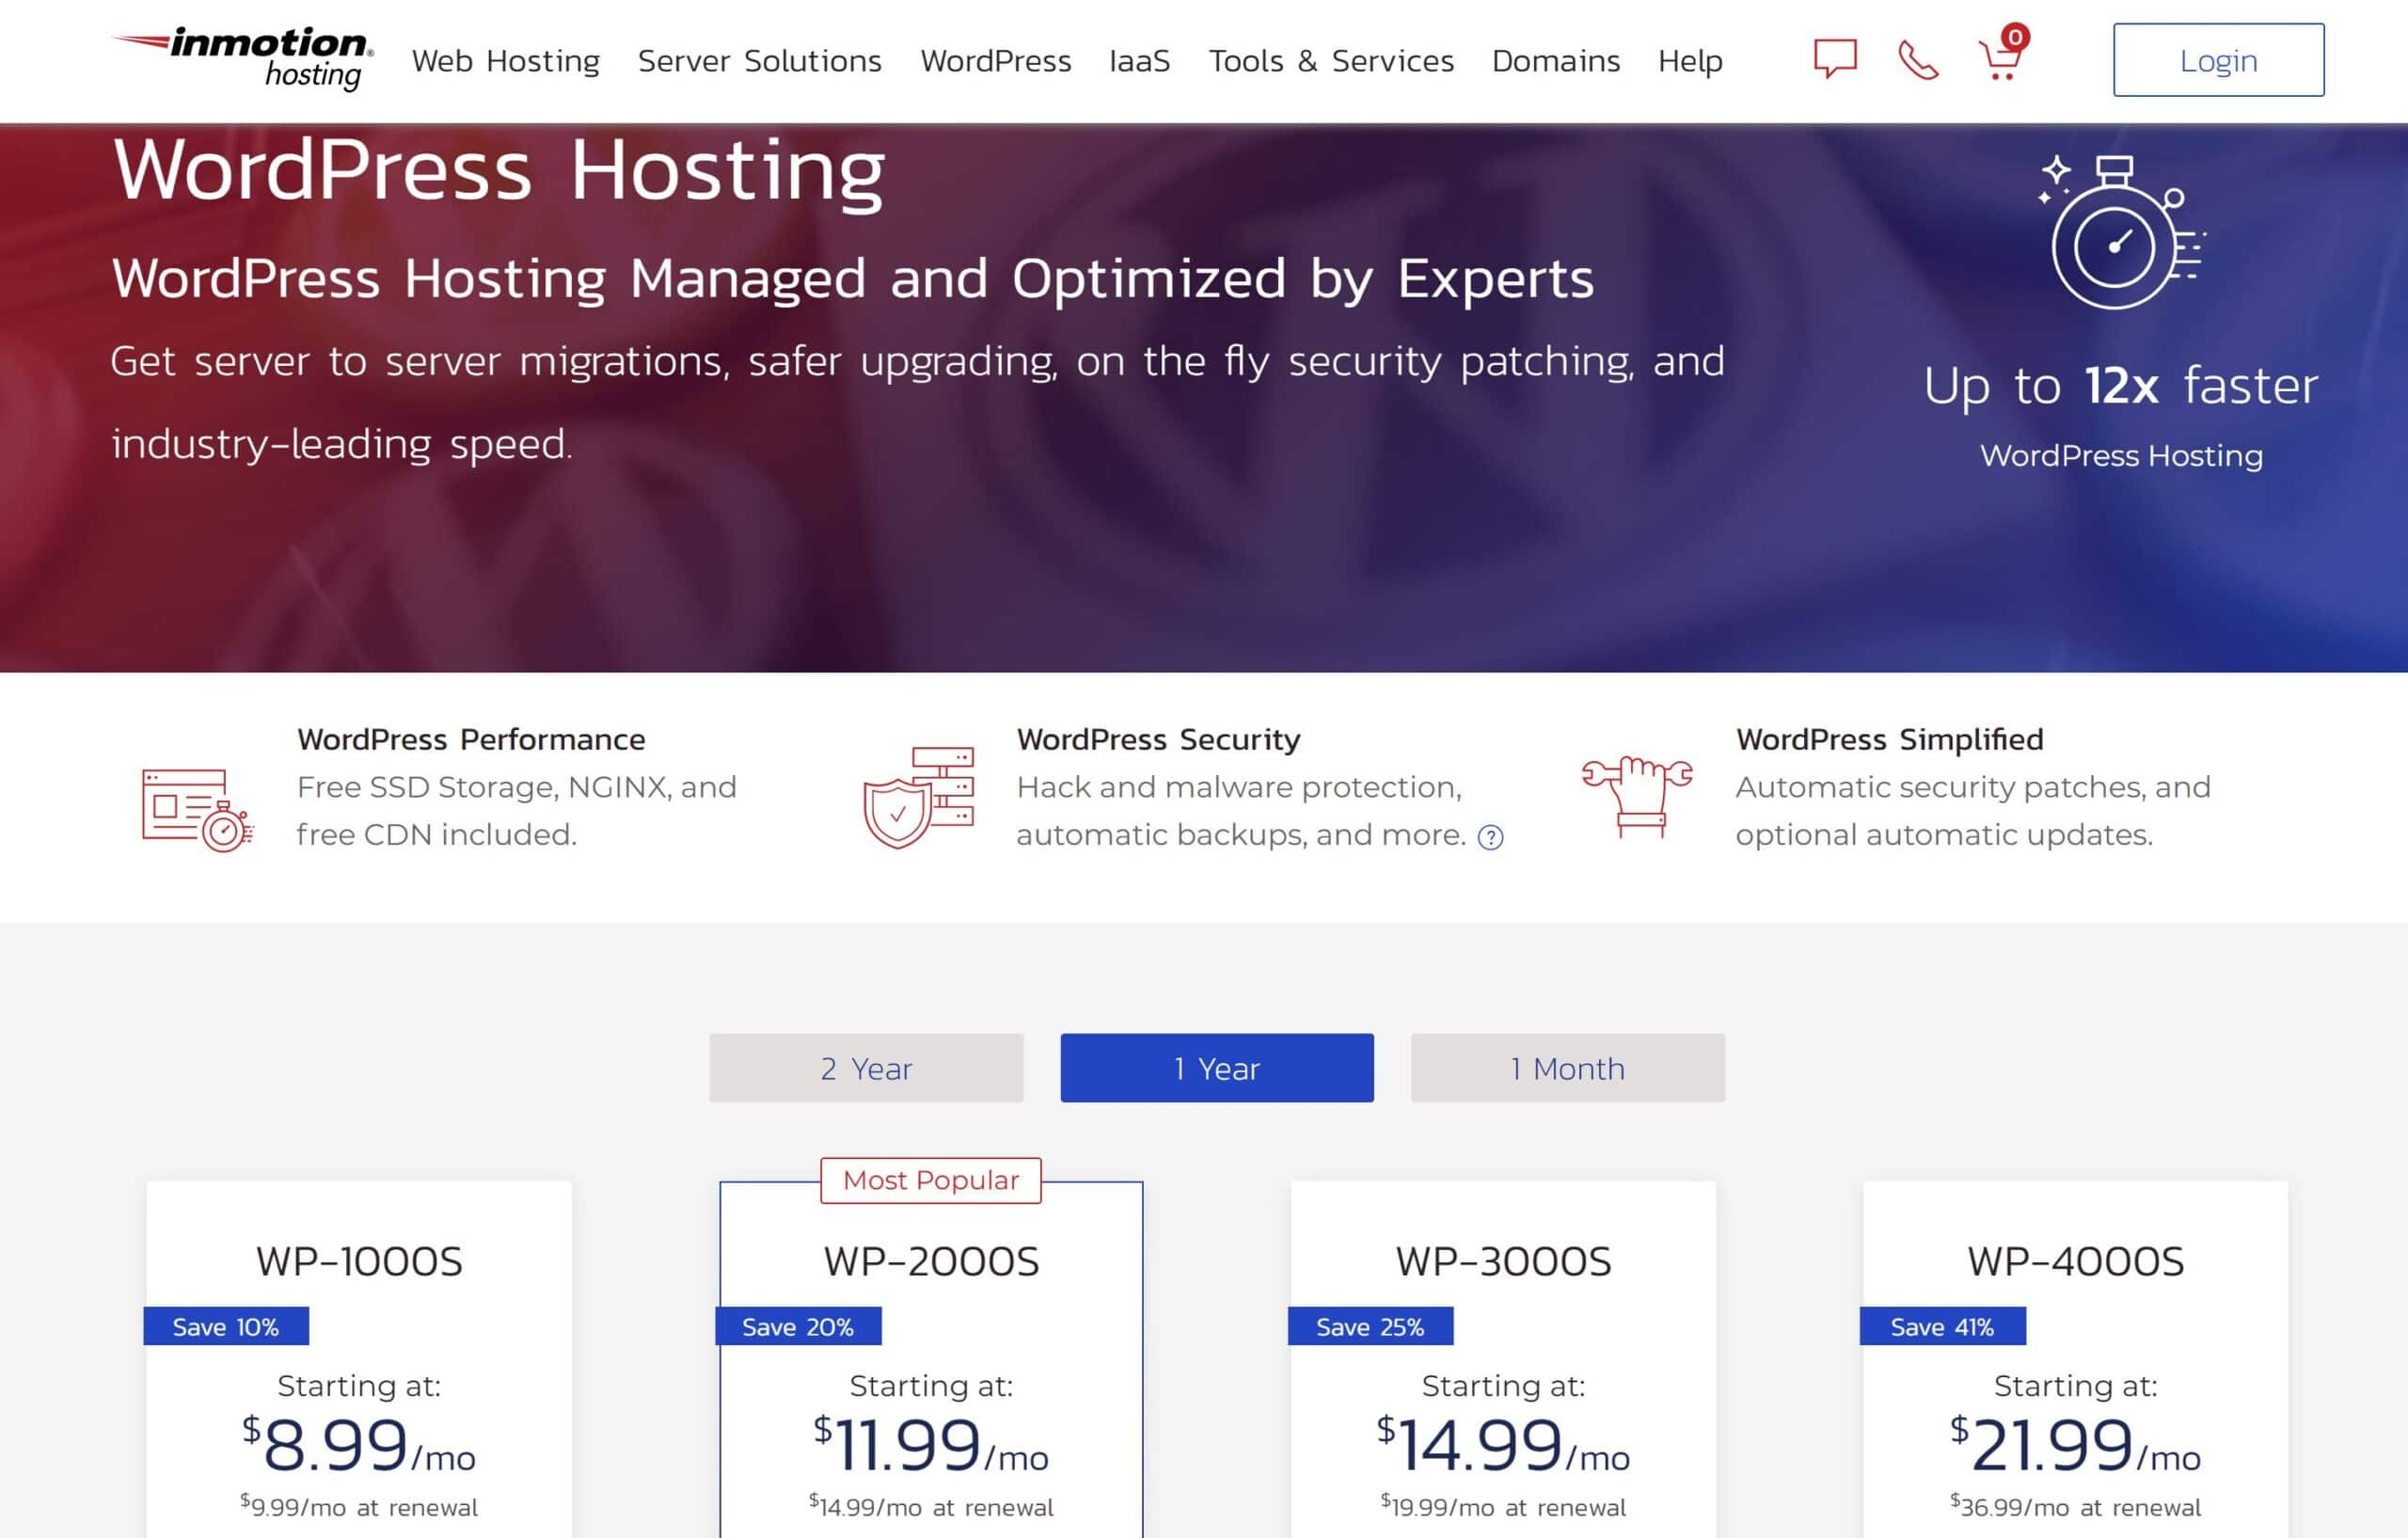 Imotion Hosting WordPress Hosting service Prices 2021